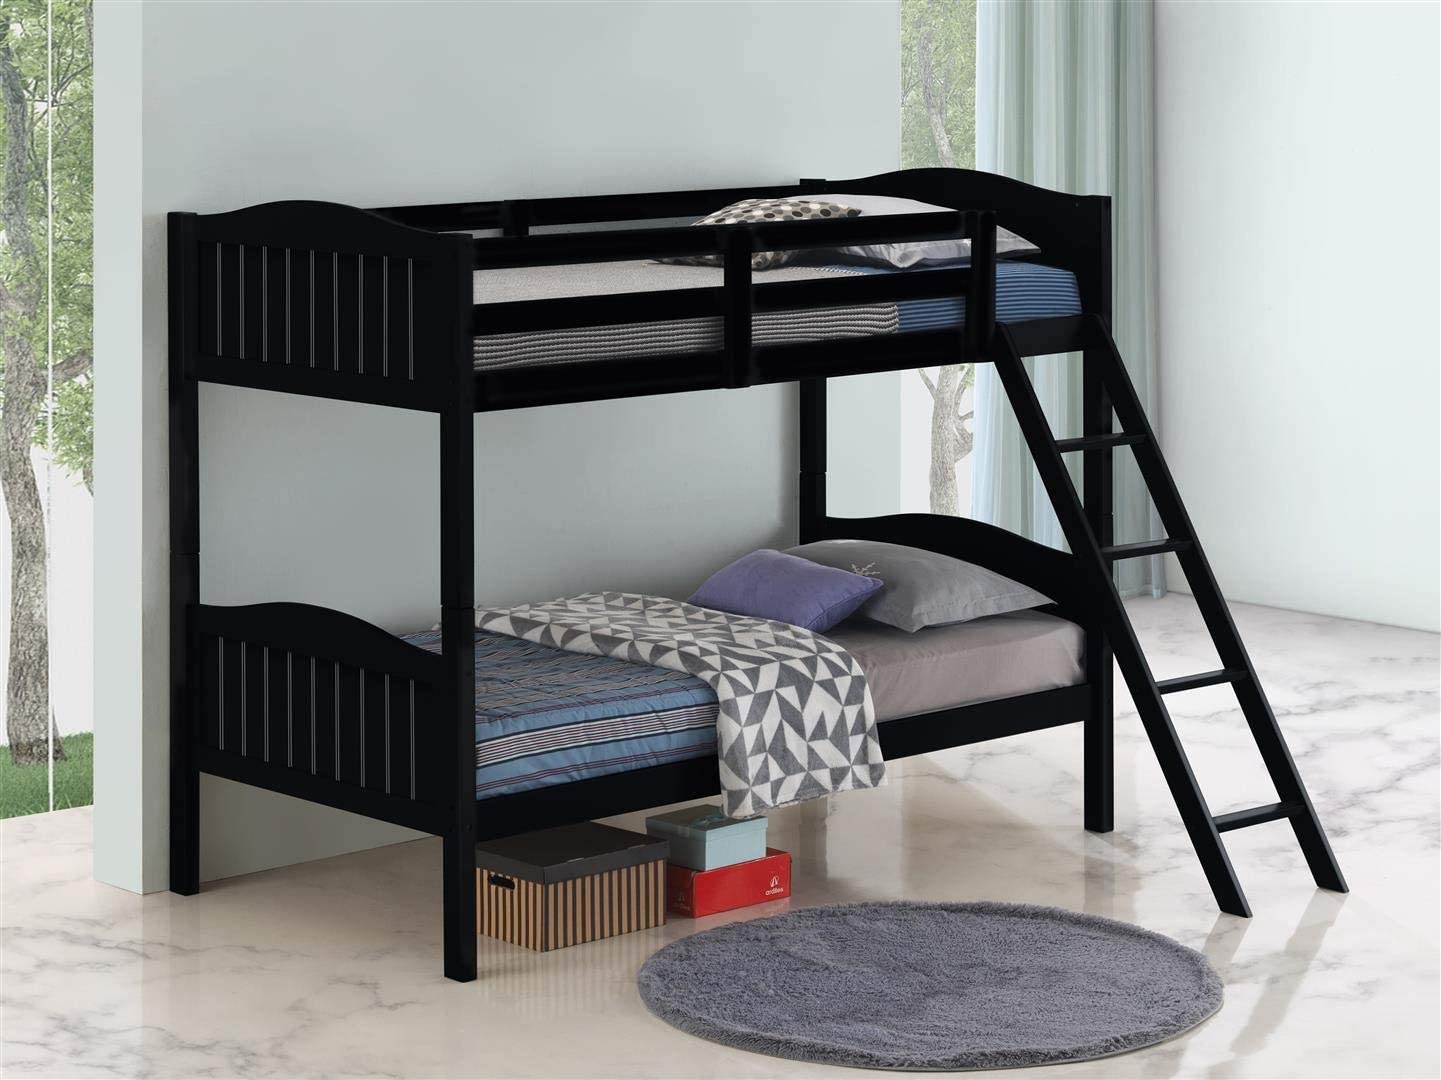 Coaster Home Furnishings Pauline Solid Wood Twin Over Twin Bunk Bed, Black